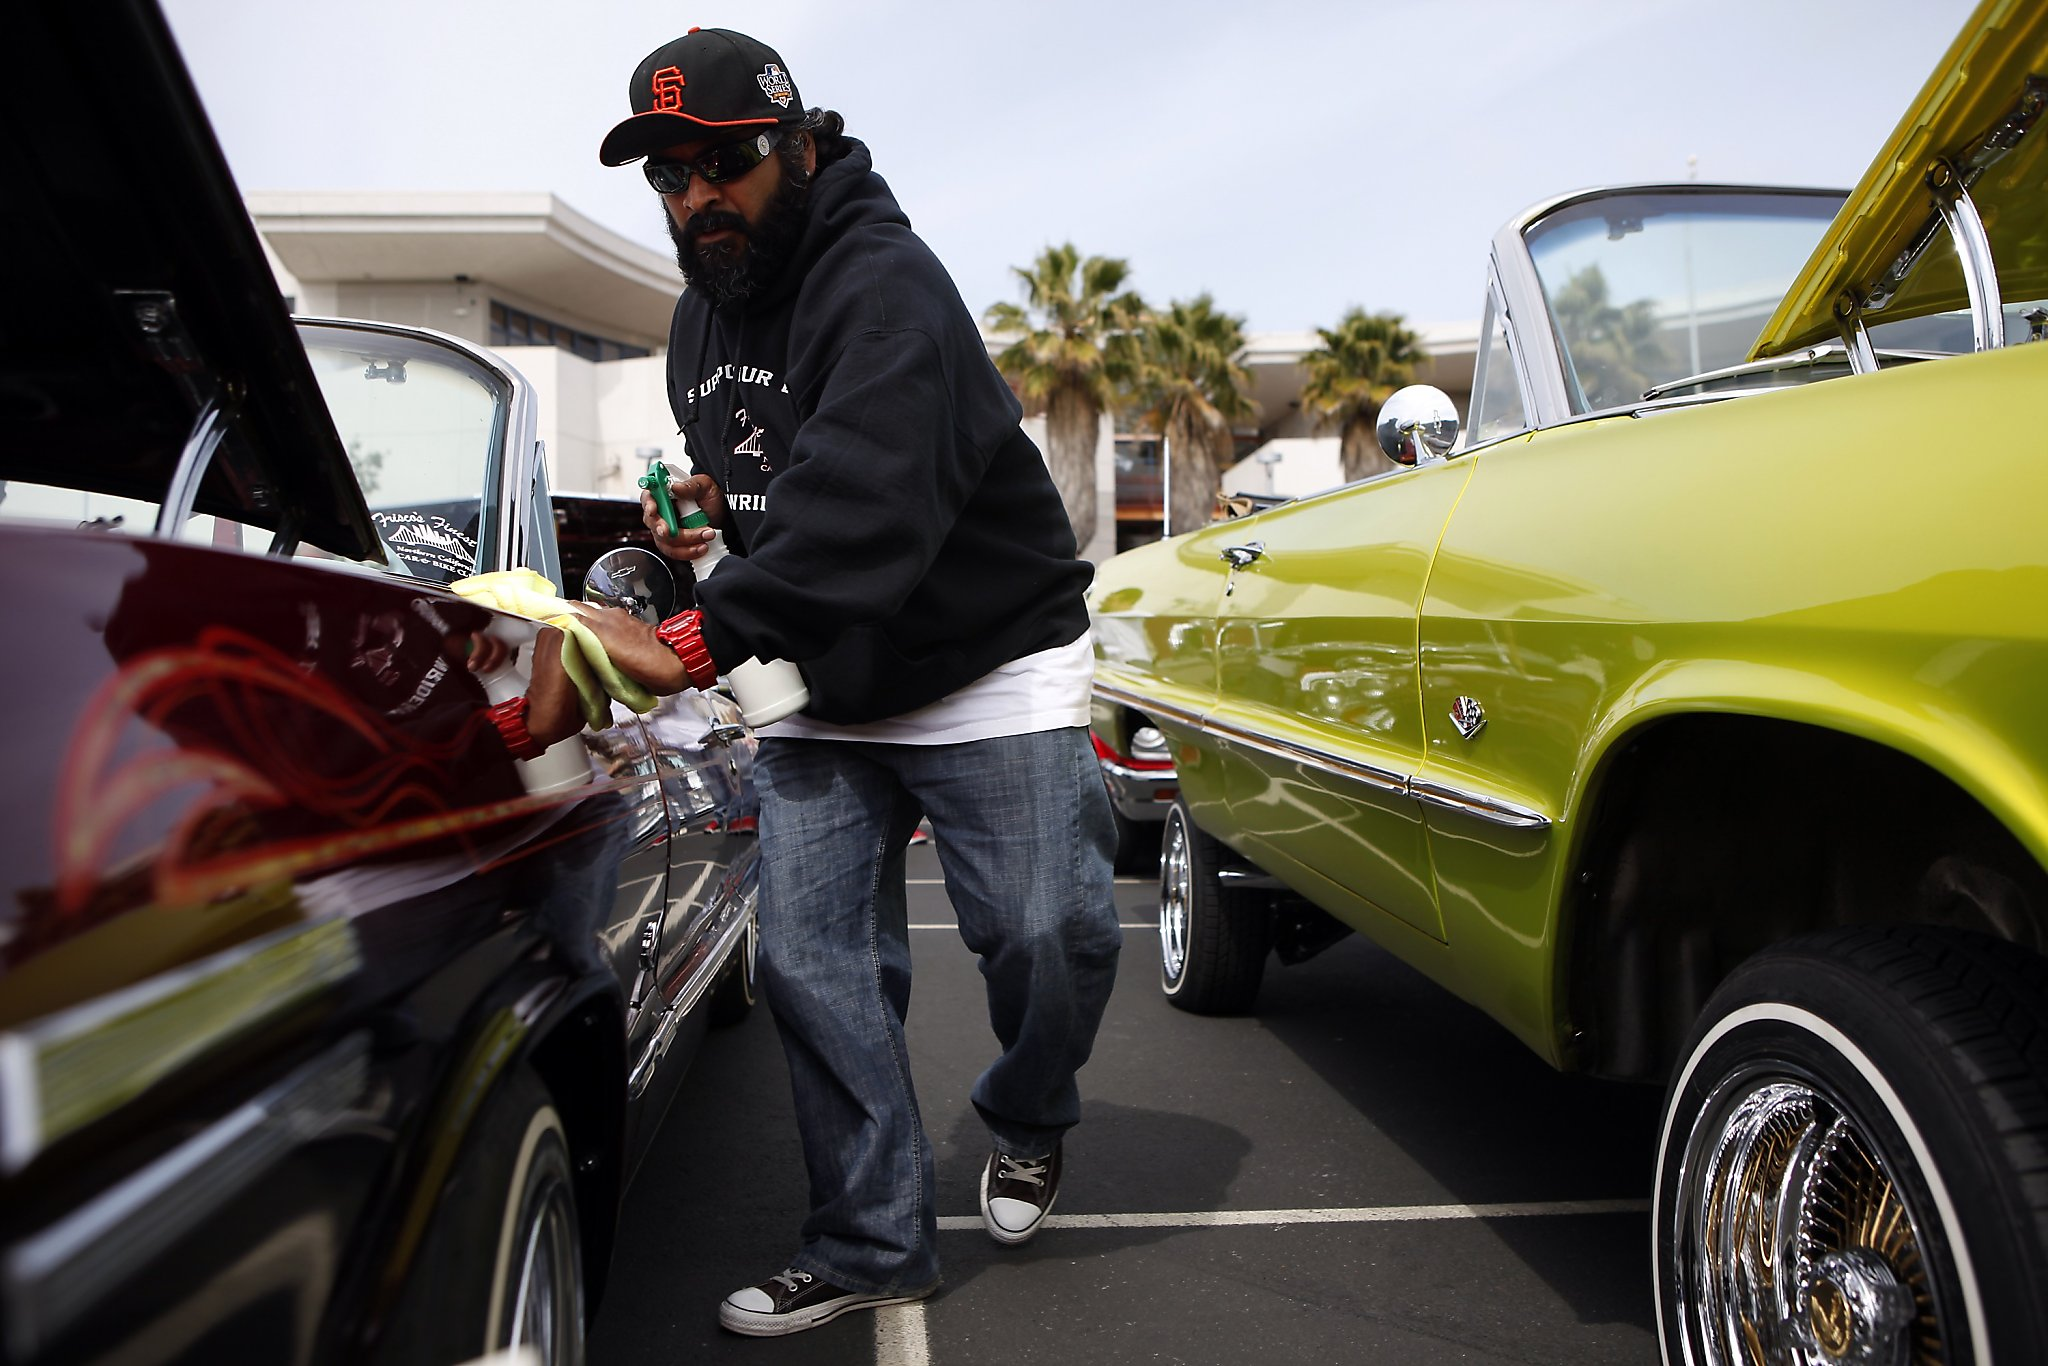 Mission Lowrider Show A Tribute To Neighborhood SFGate - Car show sf bay area